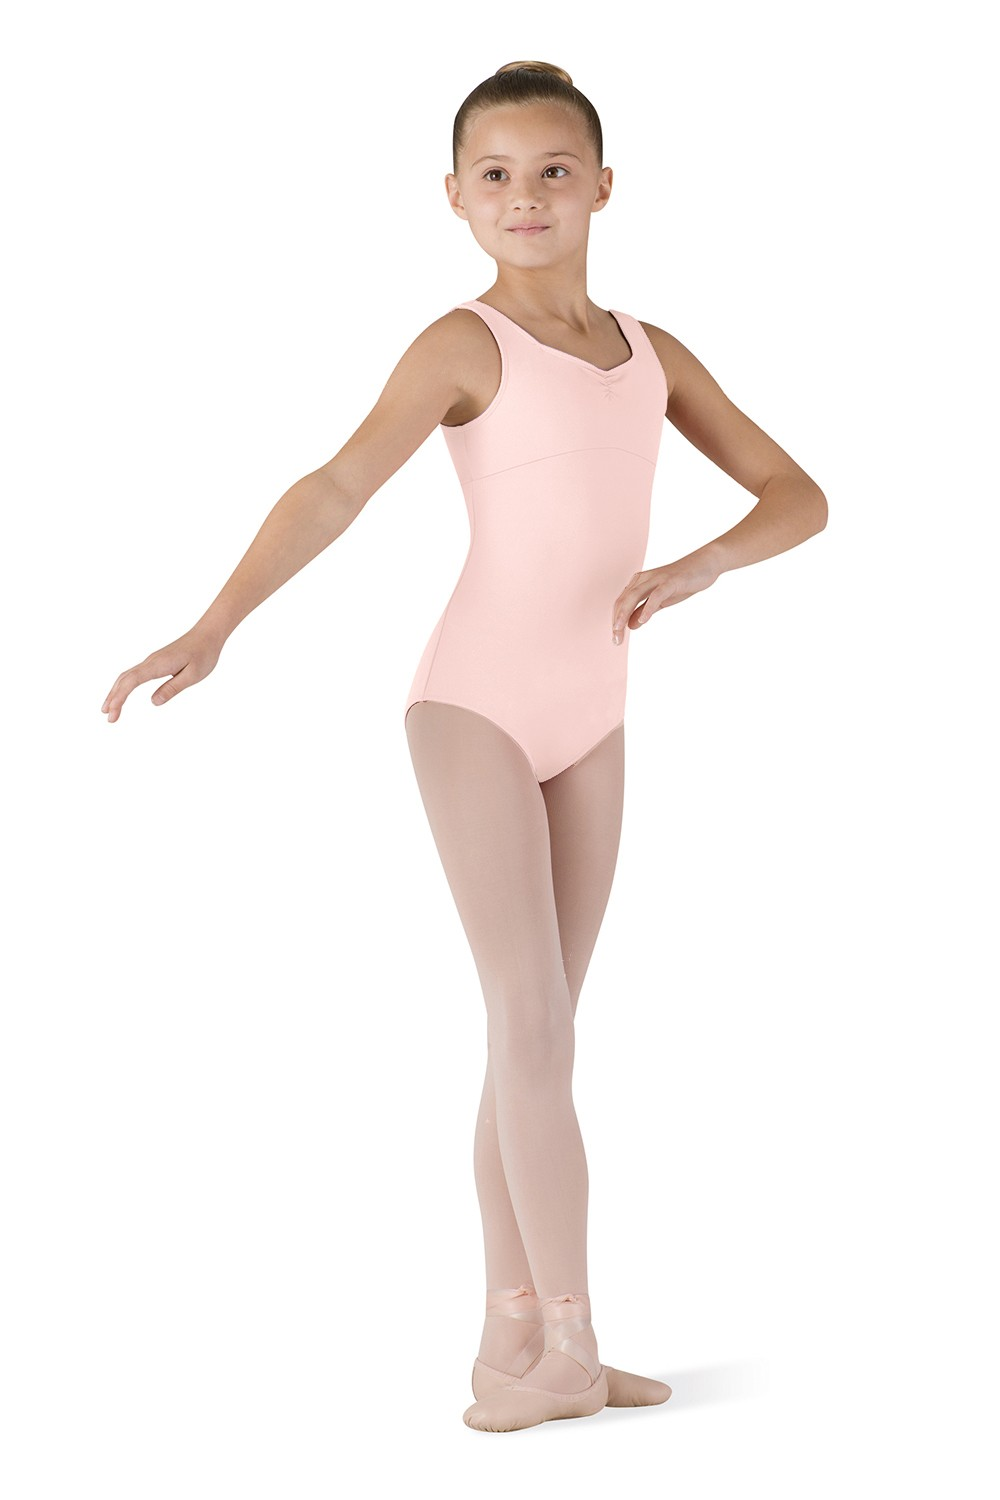 Plage - Tween Children's Dance Leotards